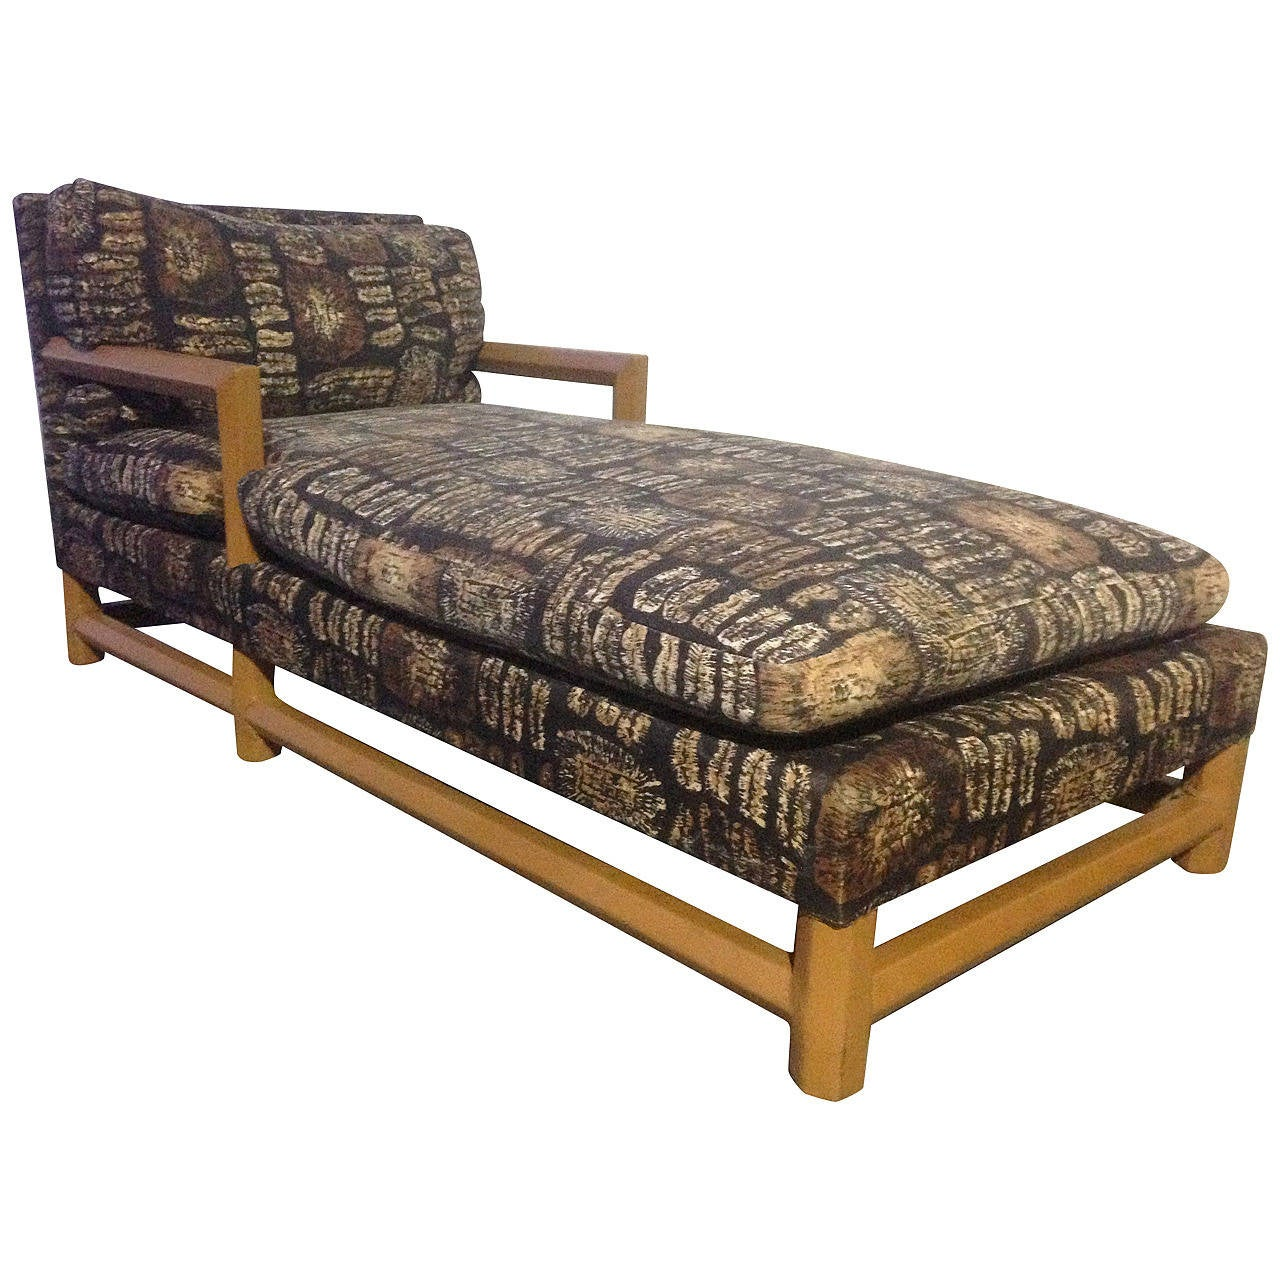 Leather and Batik Chaise Longue in the Style of Karl Springer For Sale